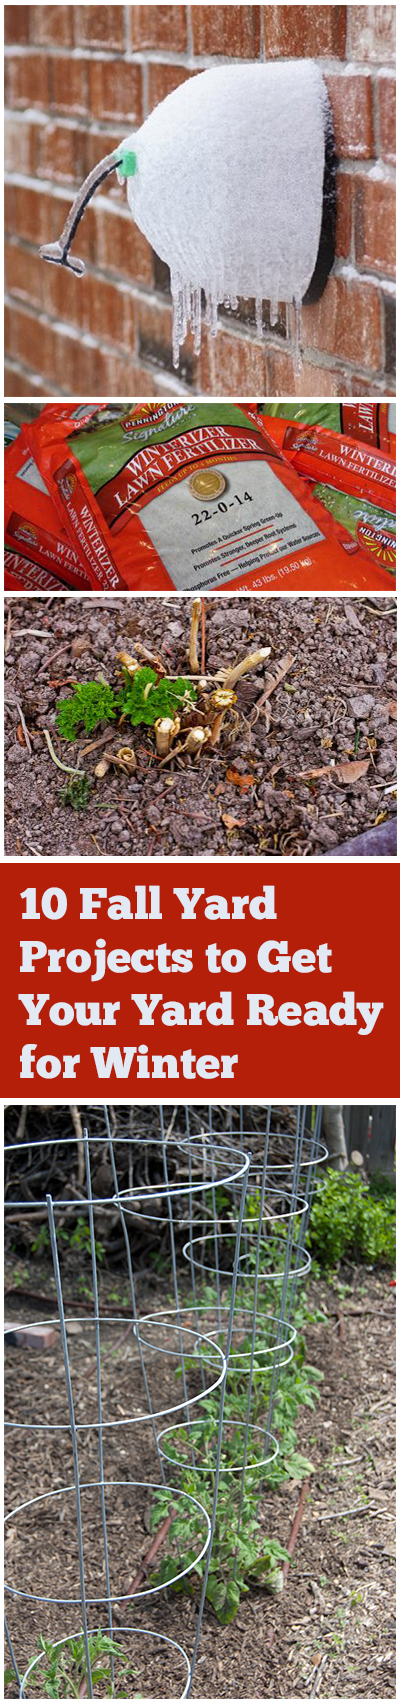 10 Fall Yard Projects to Get Your Yard Ready for Winter